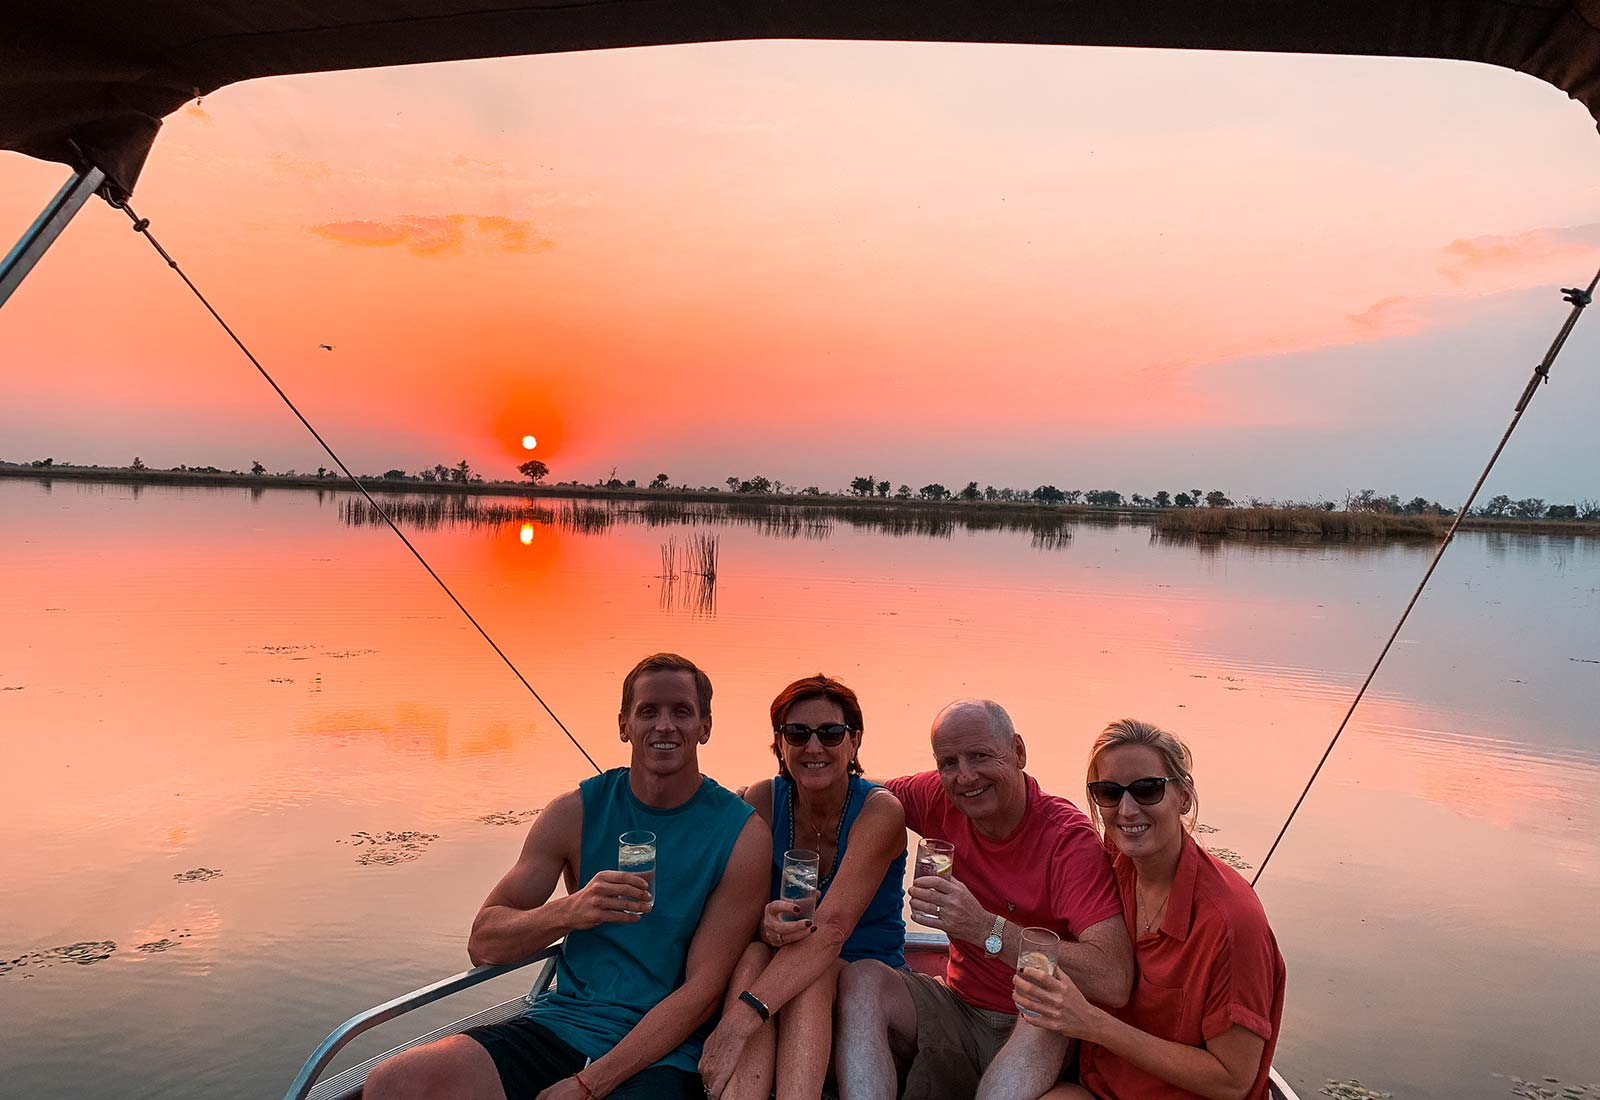 David Simpson and family at sunset in Okavango Delta in Botswana, Africa. An owl and African sunsets